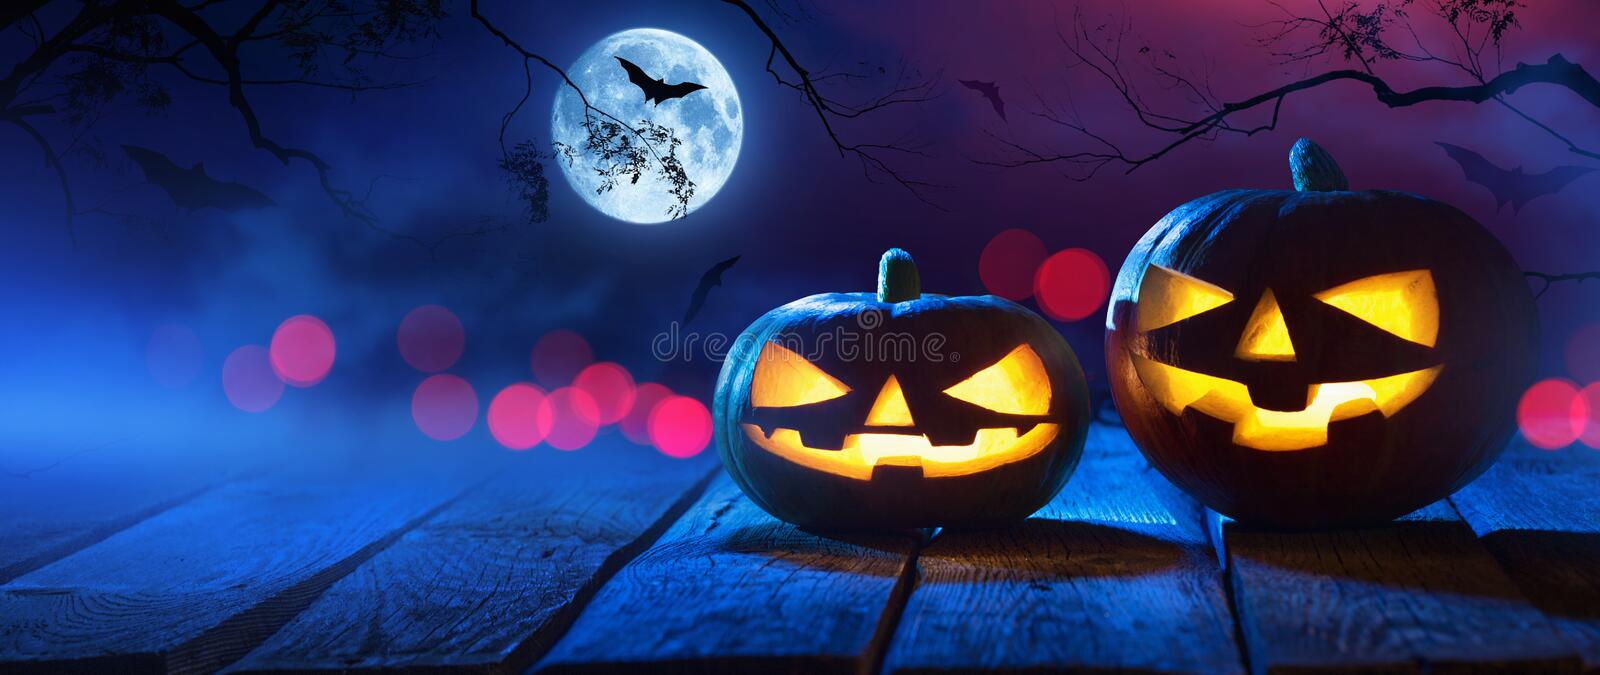 Halloween Pumpkins On Wood In A Spooky Forest At Night royalty free stock images